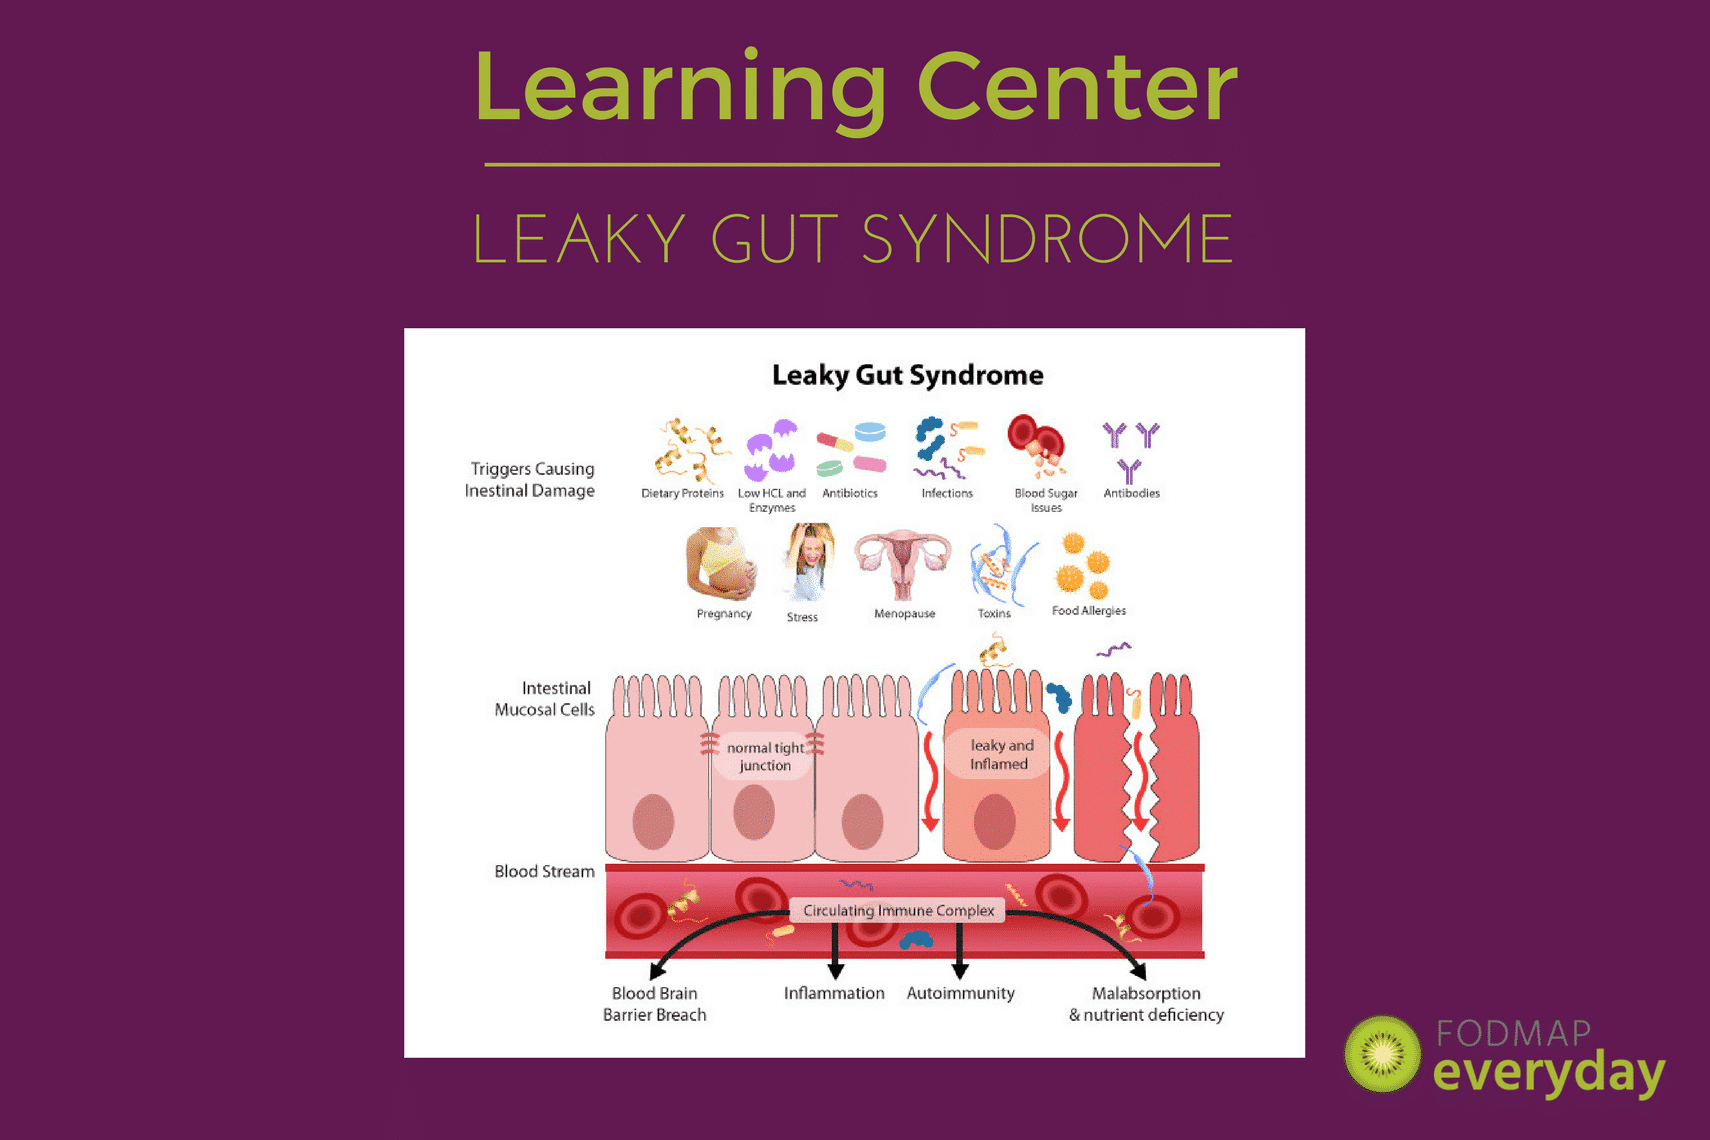 Learn about Leaky Gut Syndrome